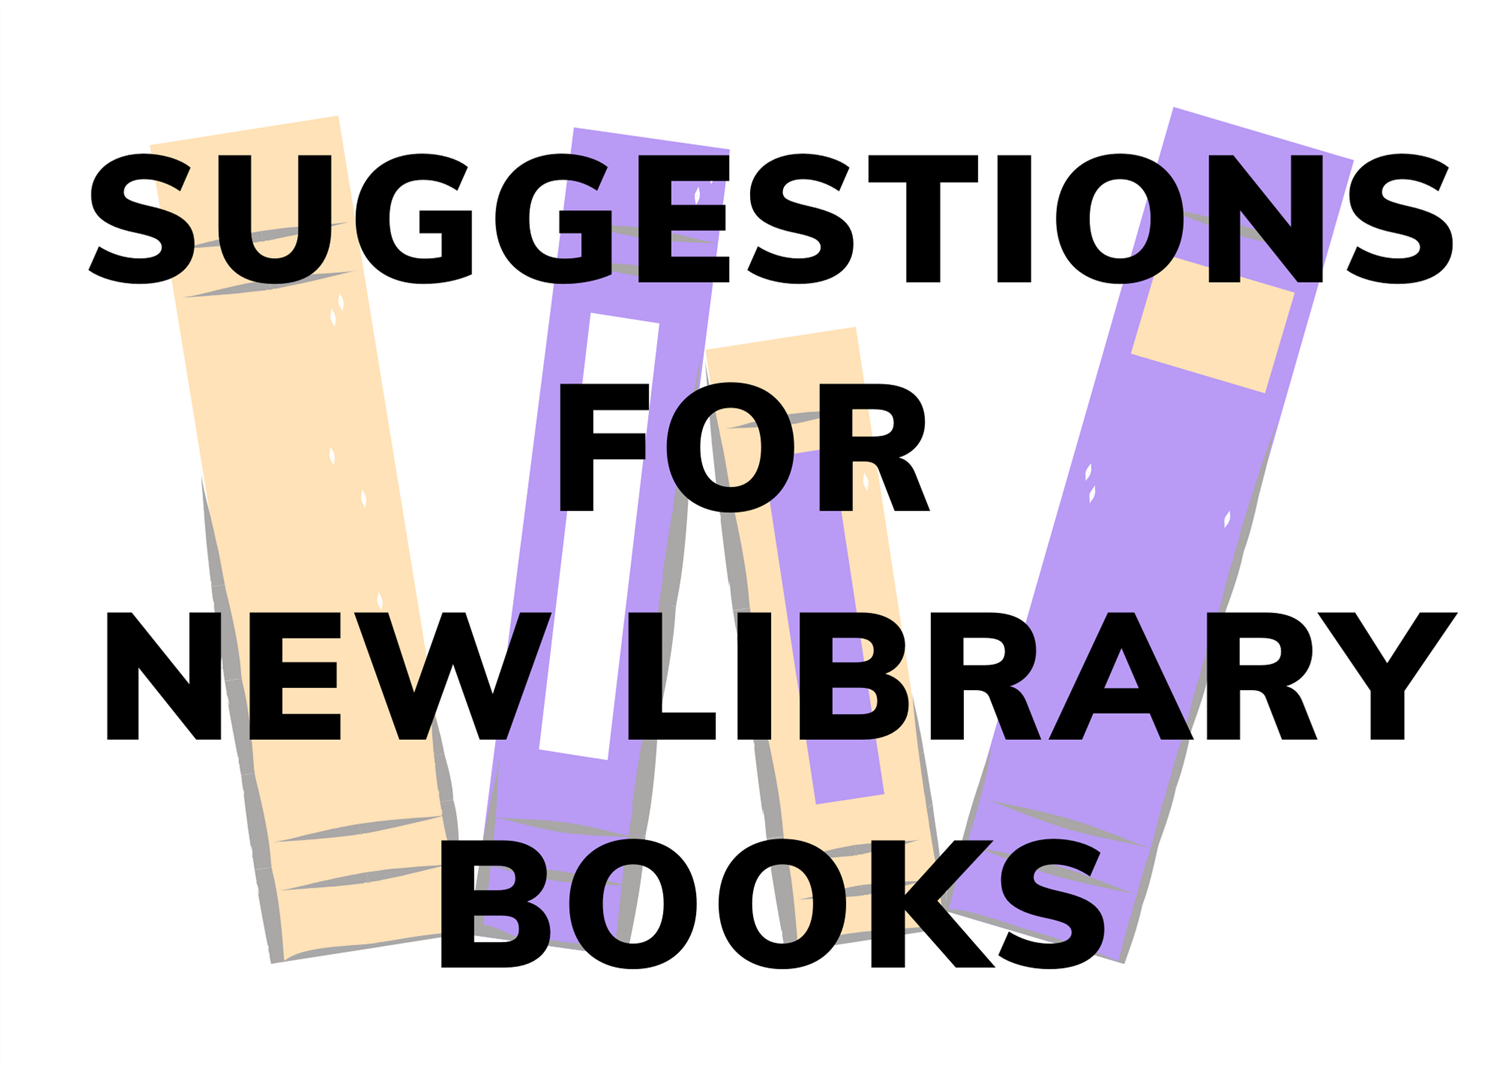 SUGGESTIONS FOR NEW LIBRARY BOOKS